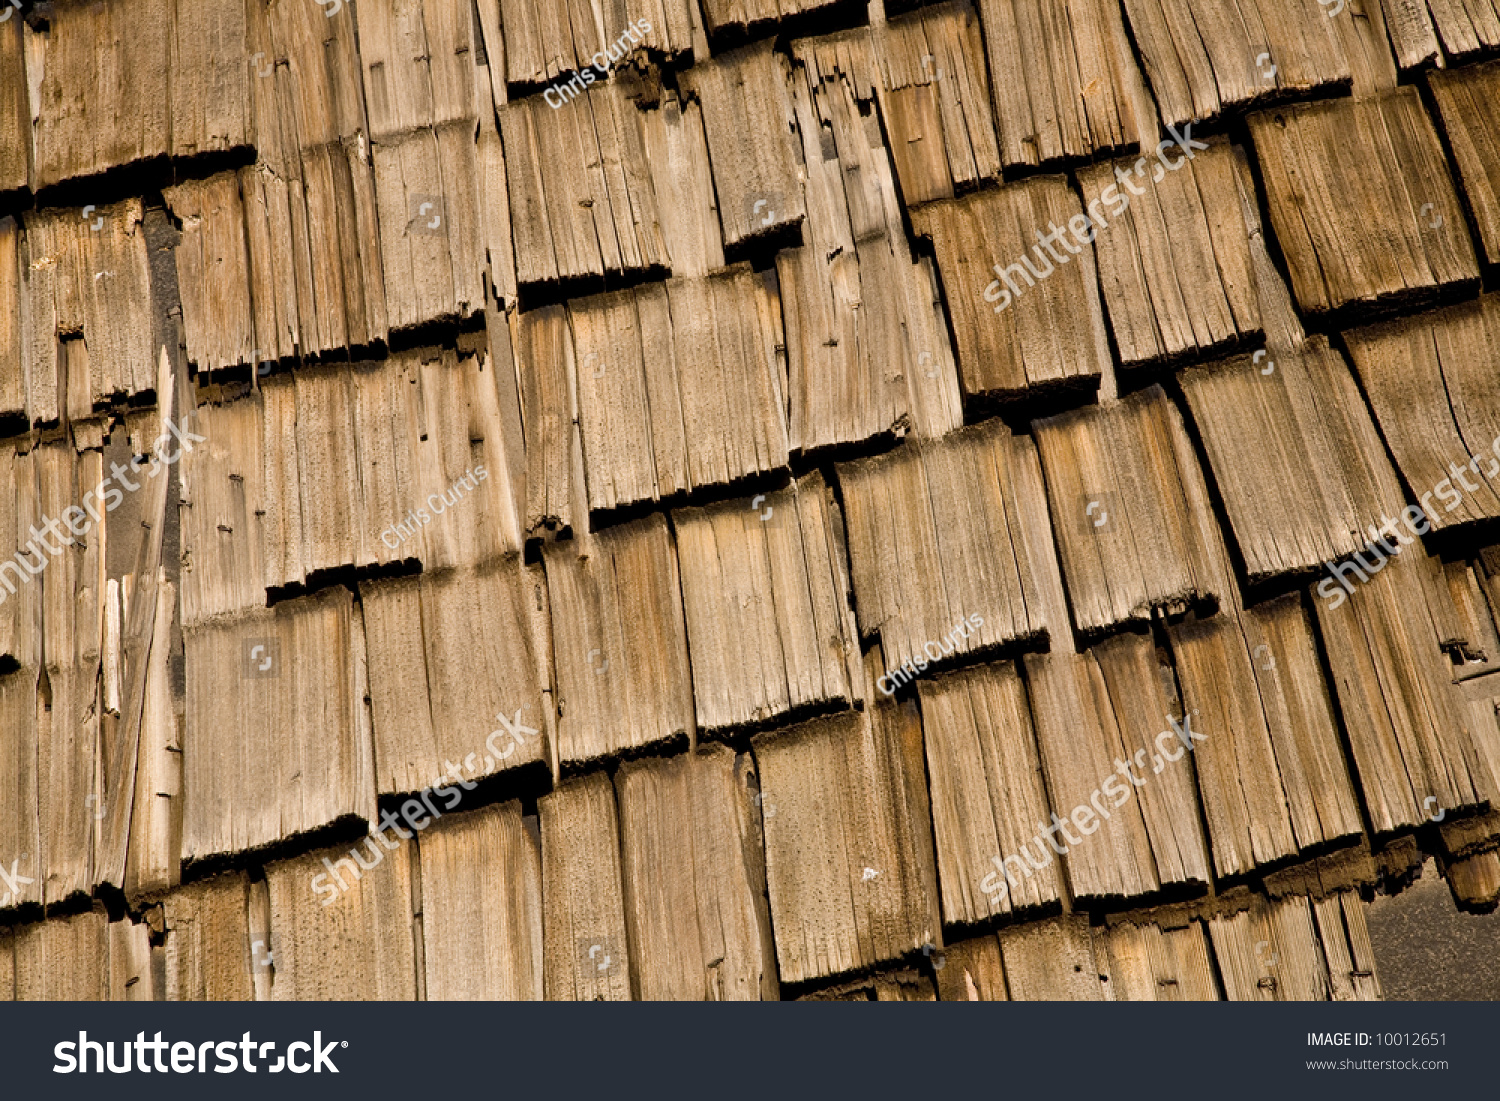 Grungy Cedar Wood Roof Shingles For Background Or Texture.